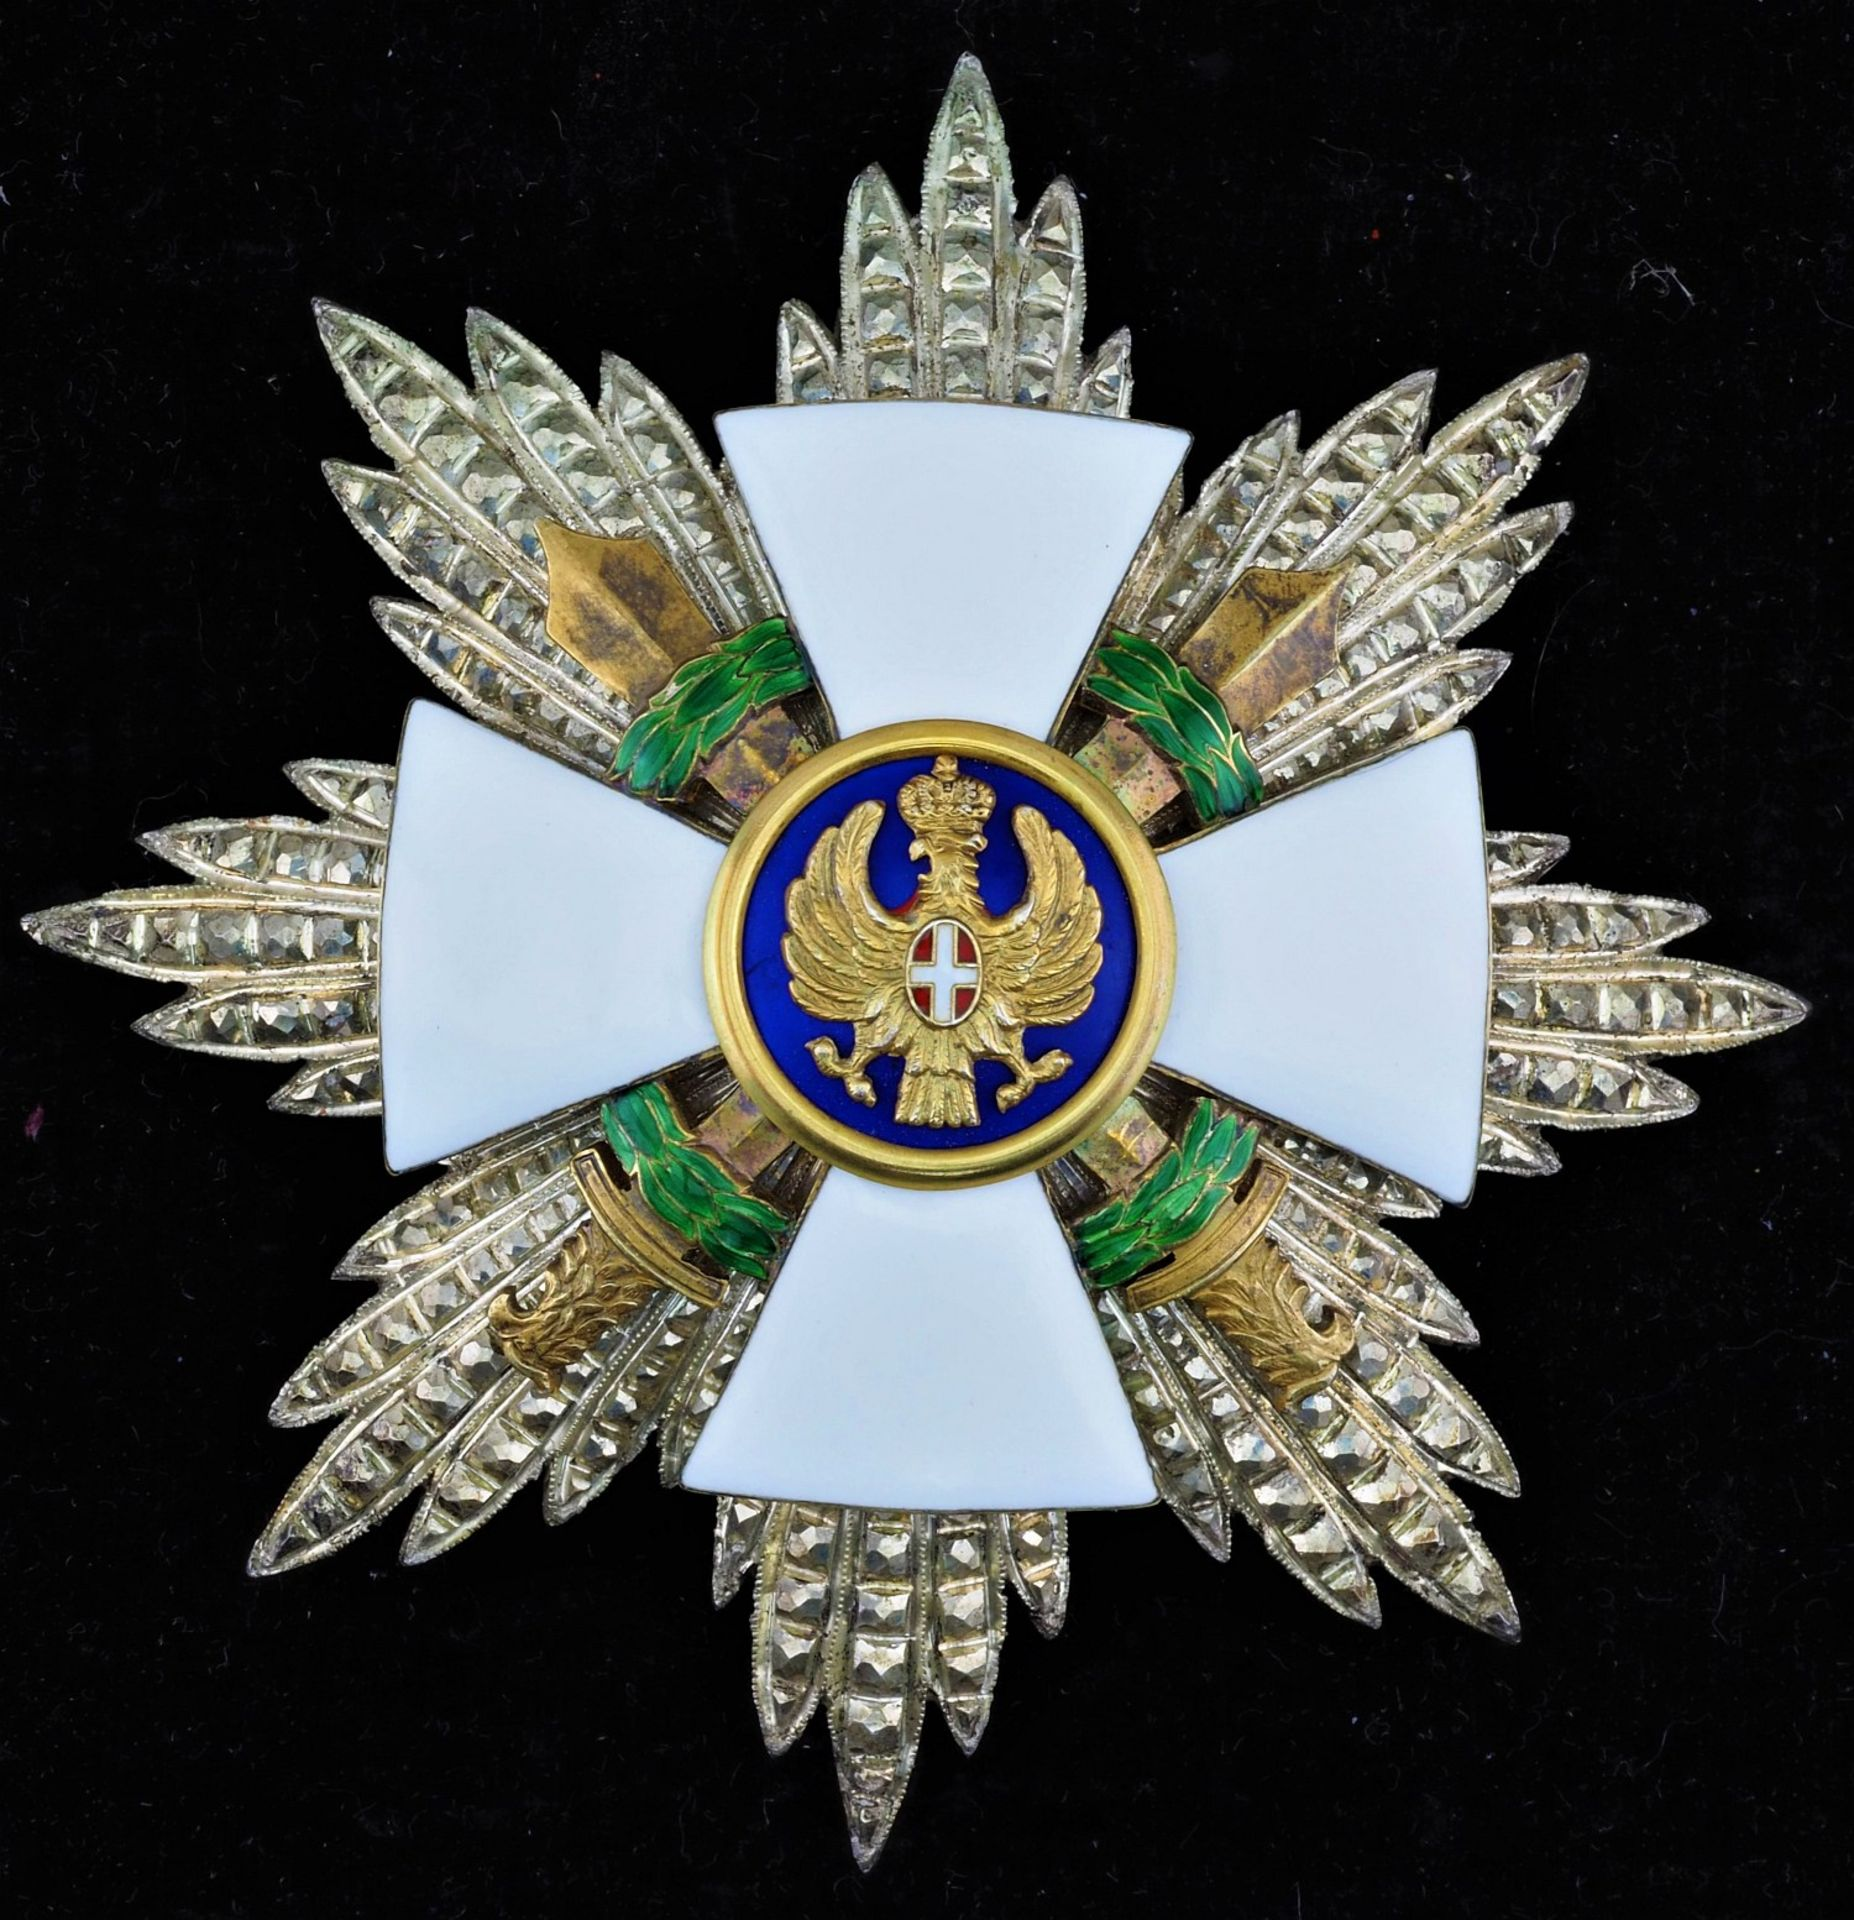 World War 2, Third Reich, Medals & Decorations Legacy: Commanding General of the Luftwaffe (Wehrmac - Image 8 of 27